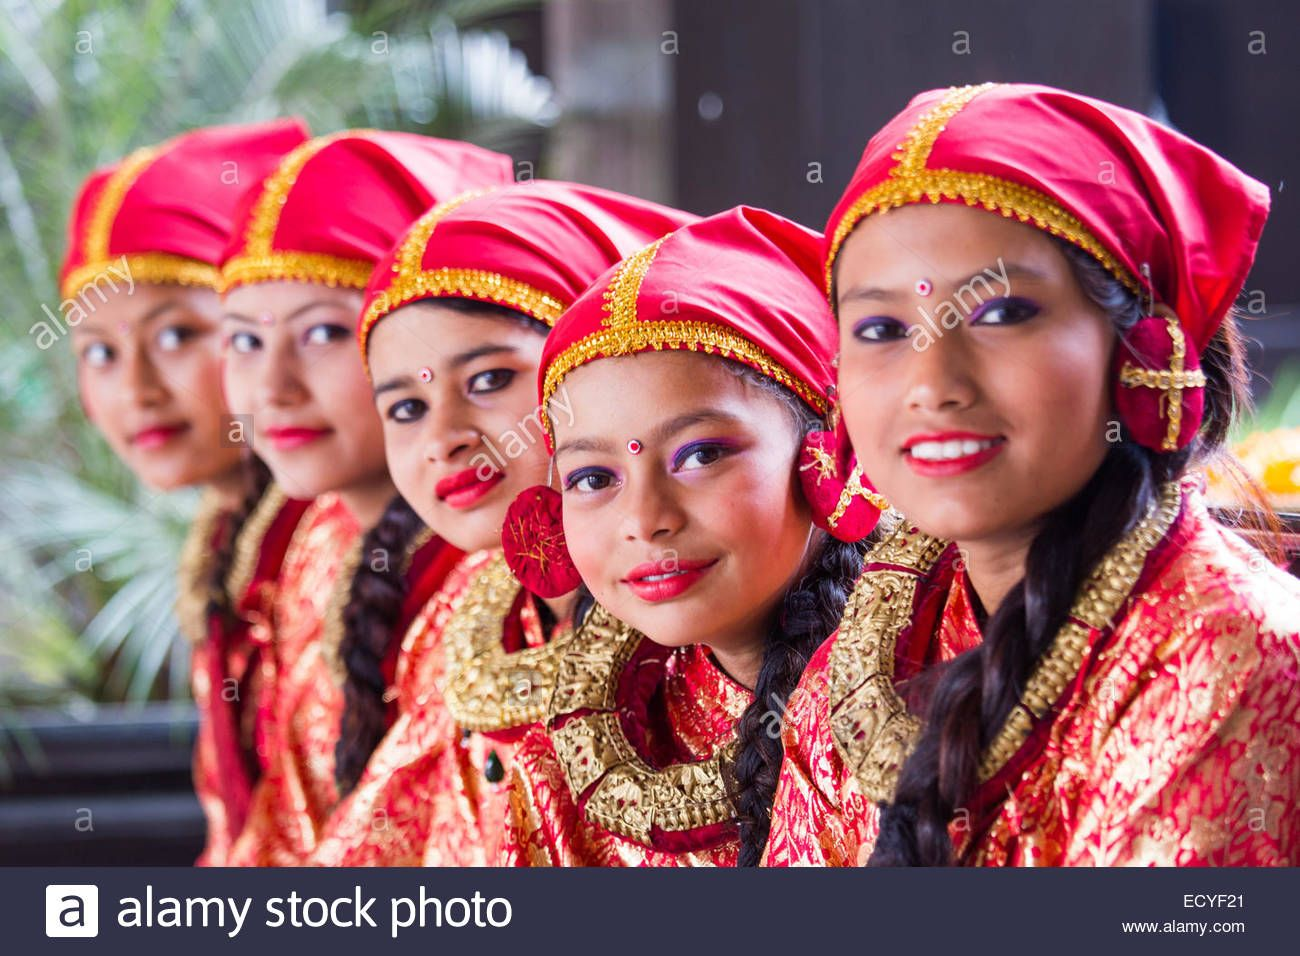 bc2600406 Girls Dressed In Traditional Clothing In Kathmandu, Nepal Stock ...